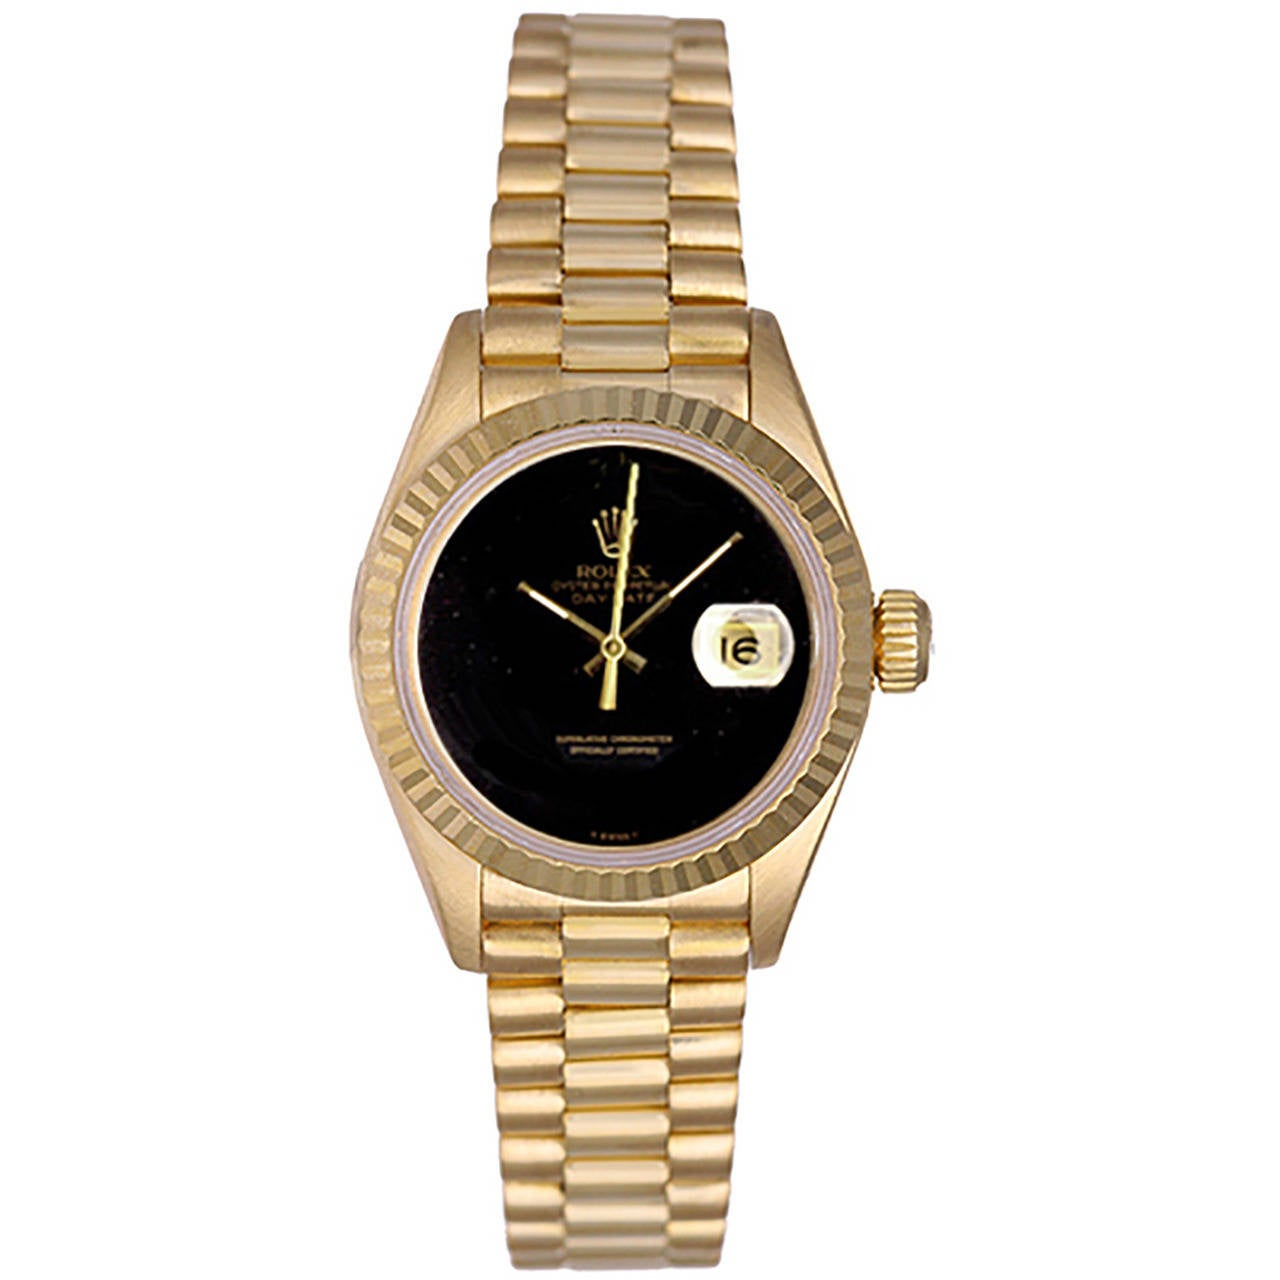 Rolex Lady's Yellow Gold President Wristwatch Ref 69178 1